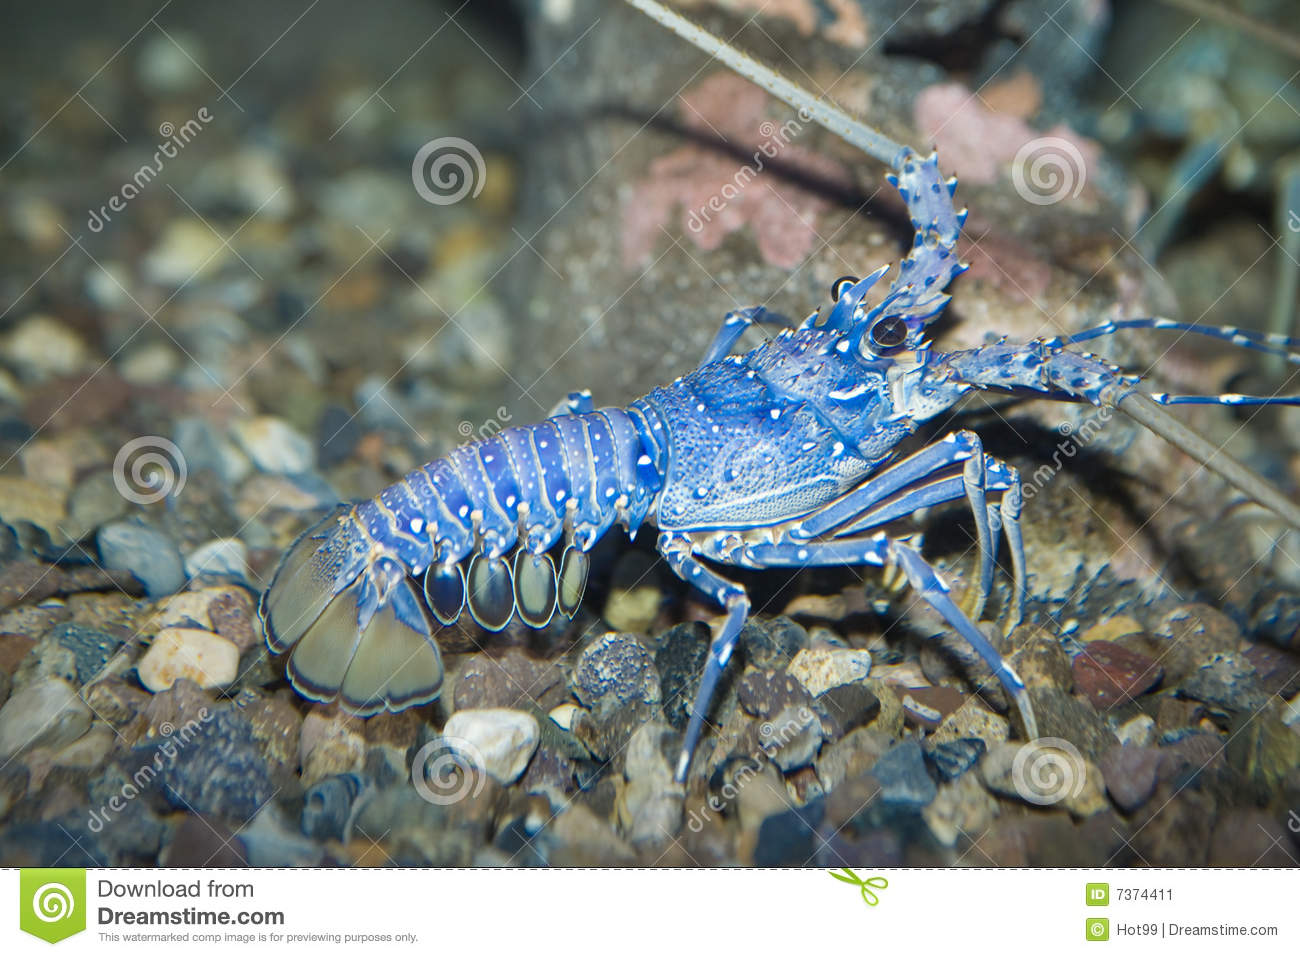 Blue lobster stock image. Image of feeding, colorful, night - 7374411